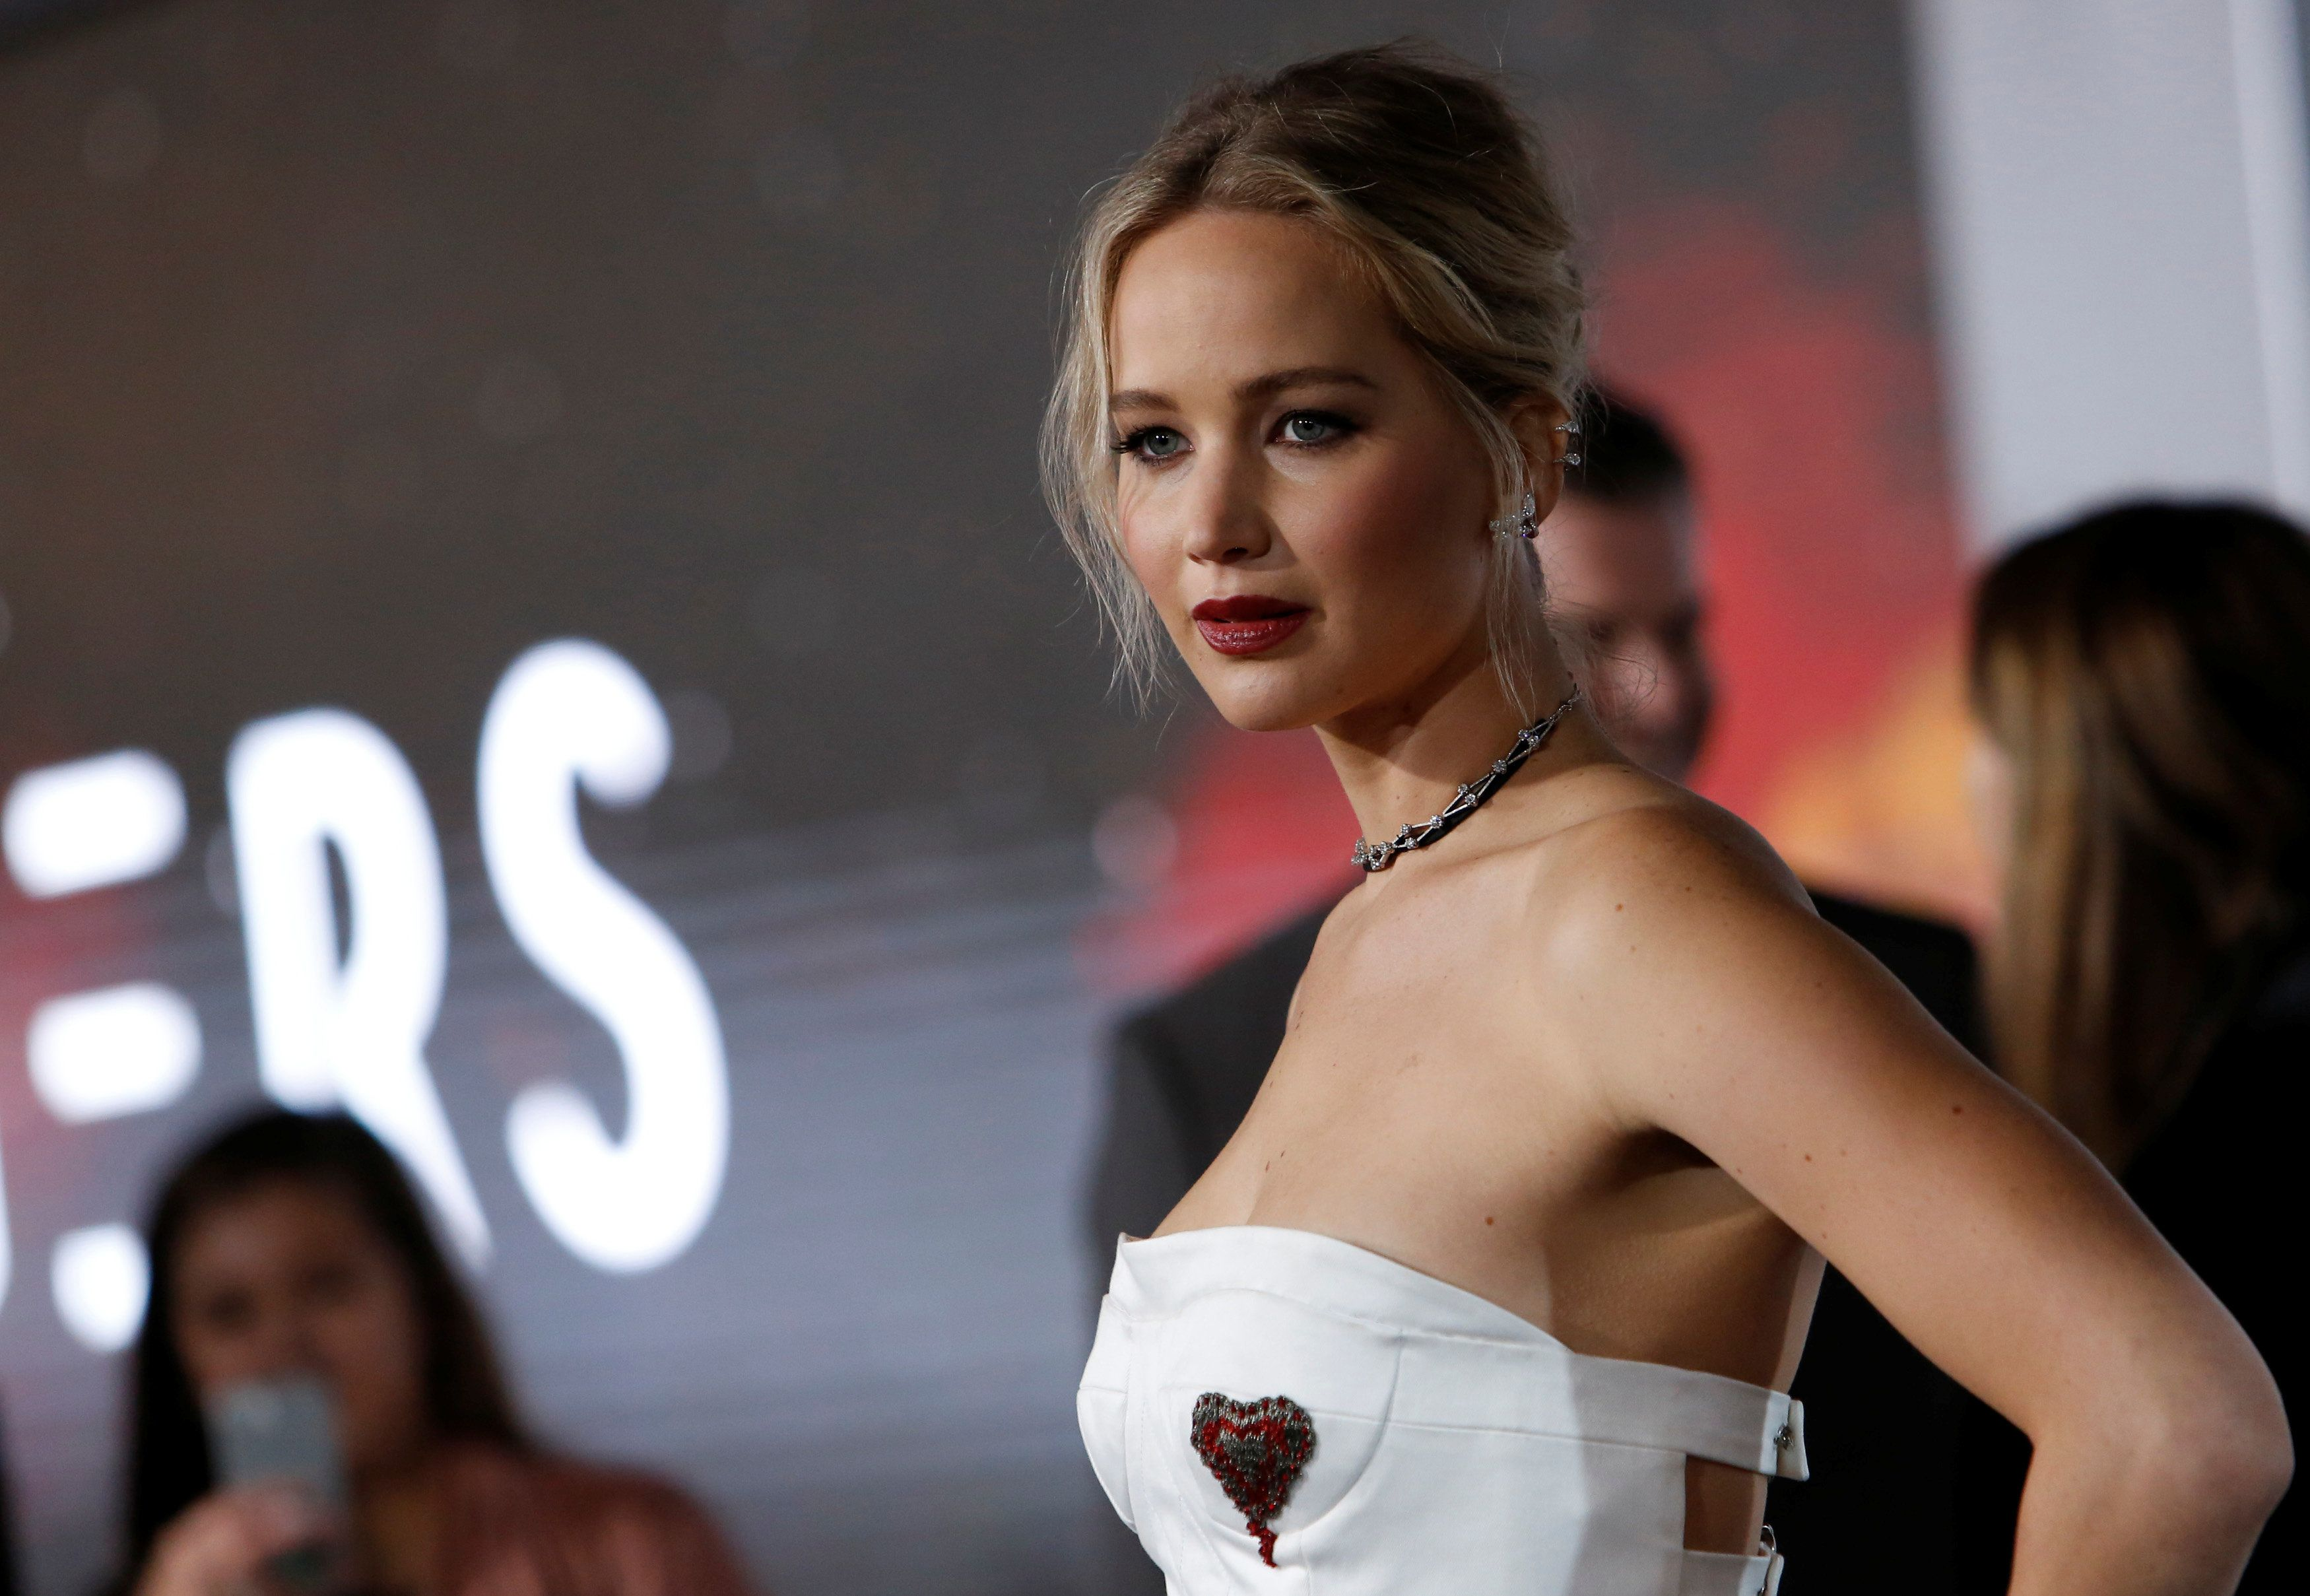 Hacker Who Stole Celebrities' Nude Photos Gets 9 Months In